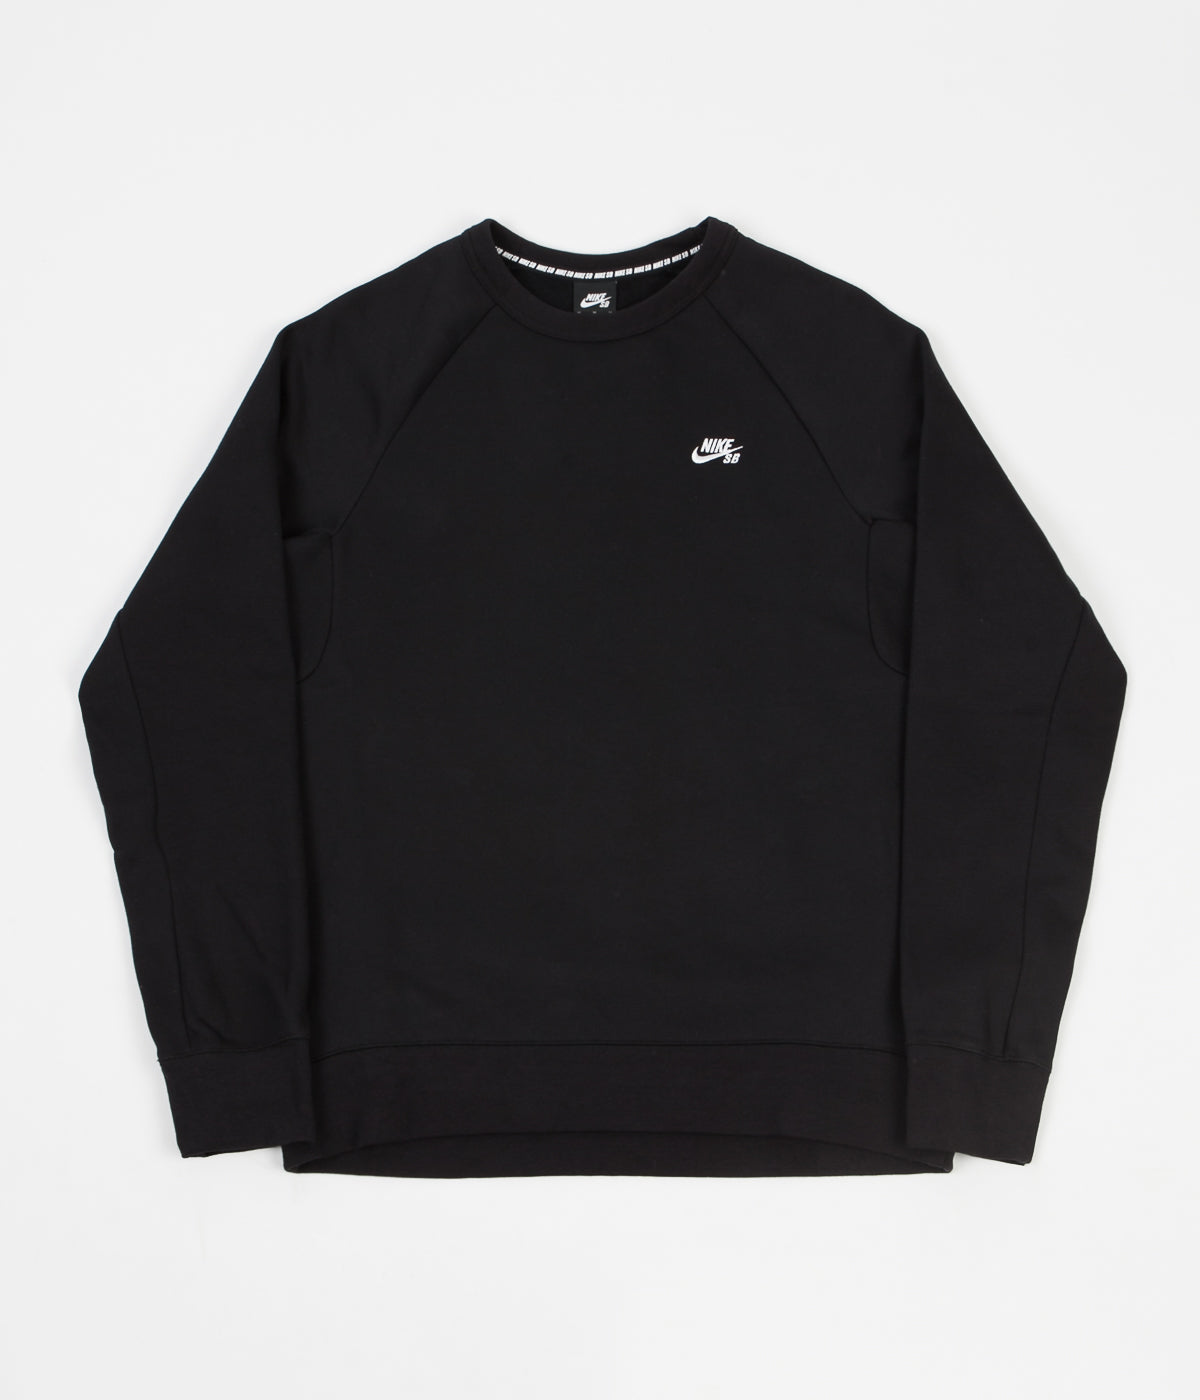 Nike Crew Neck Sweatshirt